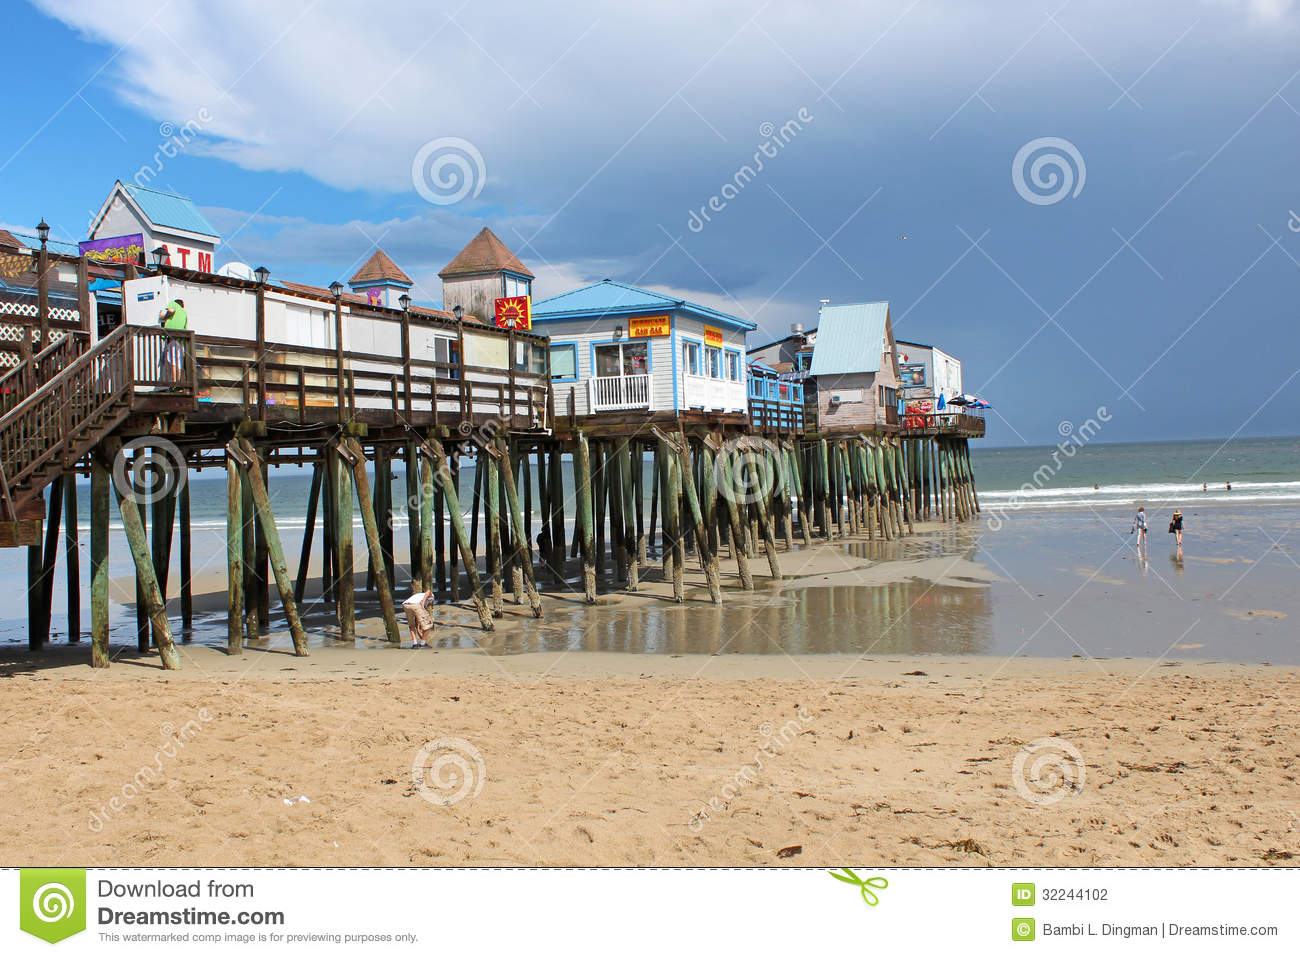 old orchard beach asian personals Property for rent in old orchard beach, me on oodle classifieds join millions of people using oodle to find unique apartment listings, houses for rent, condo listings, rooms for rent, and roommates don't miss what's happening in your neighborhood.